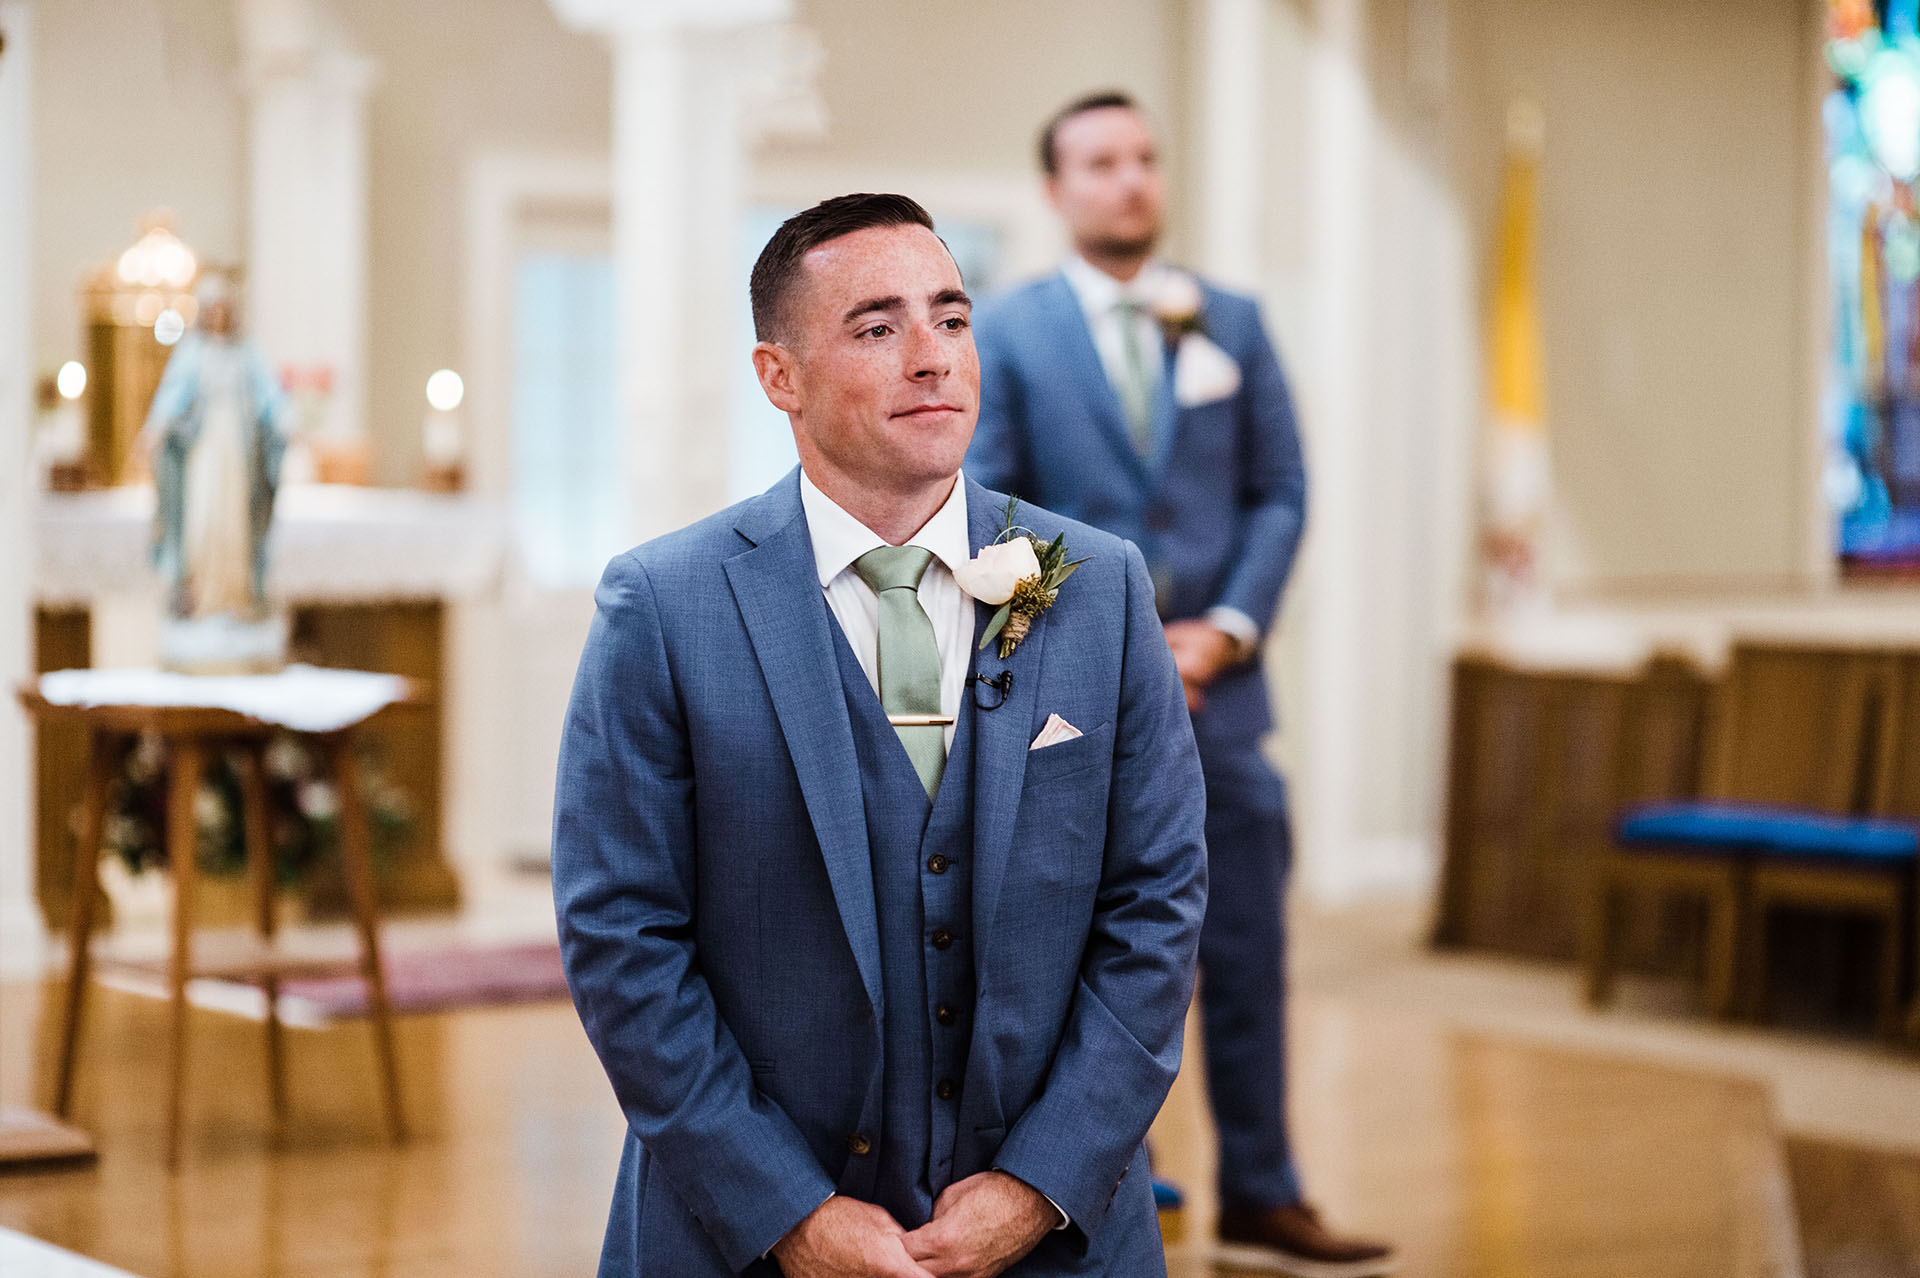 boston-wedding-photographer-28